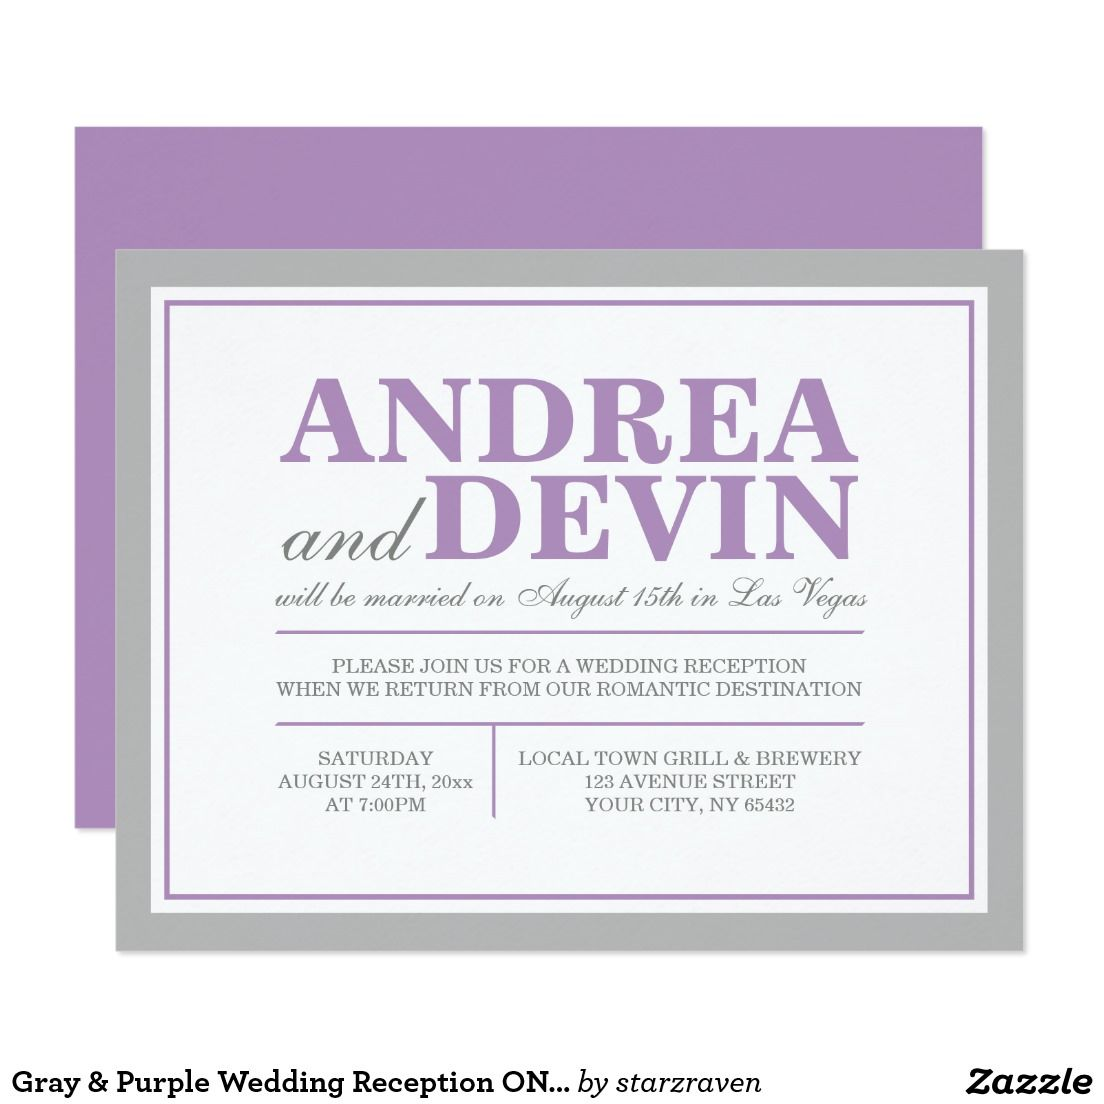 Thank you, Rhonda in Texas, for your purchase of these Gray & Purple Wedding Reception ONLY Invitations. (8/26/2016)